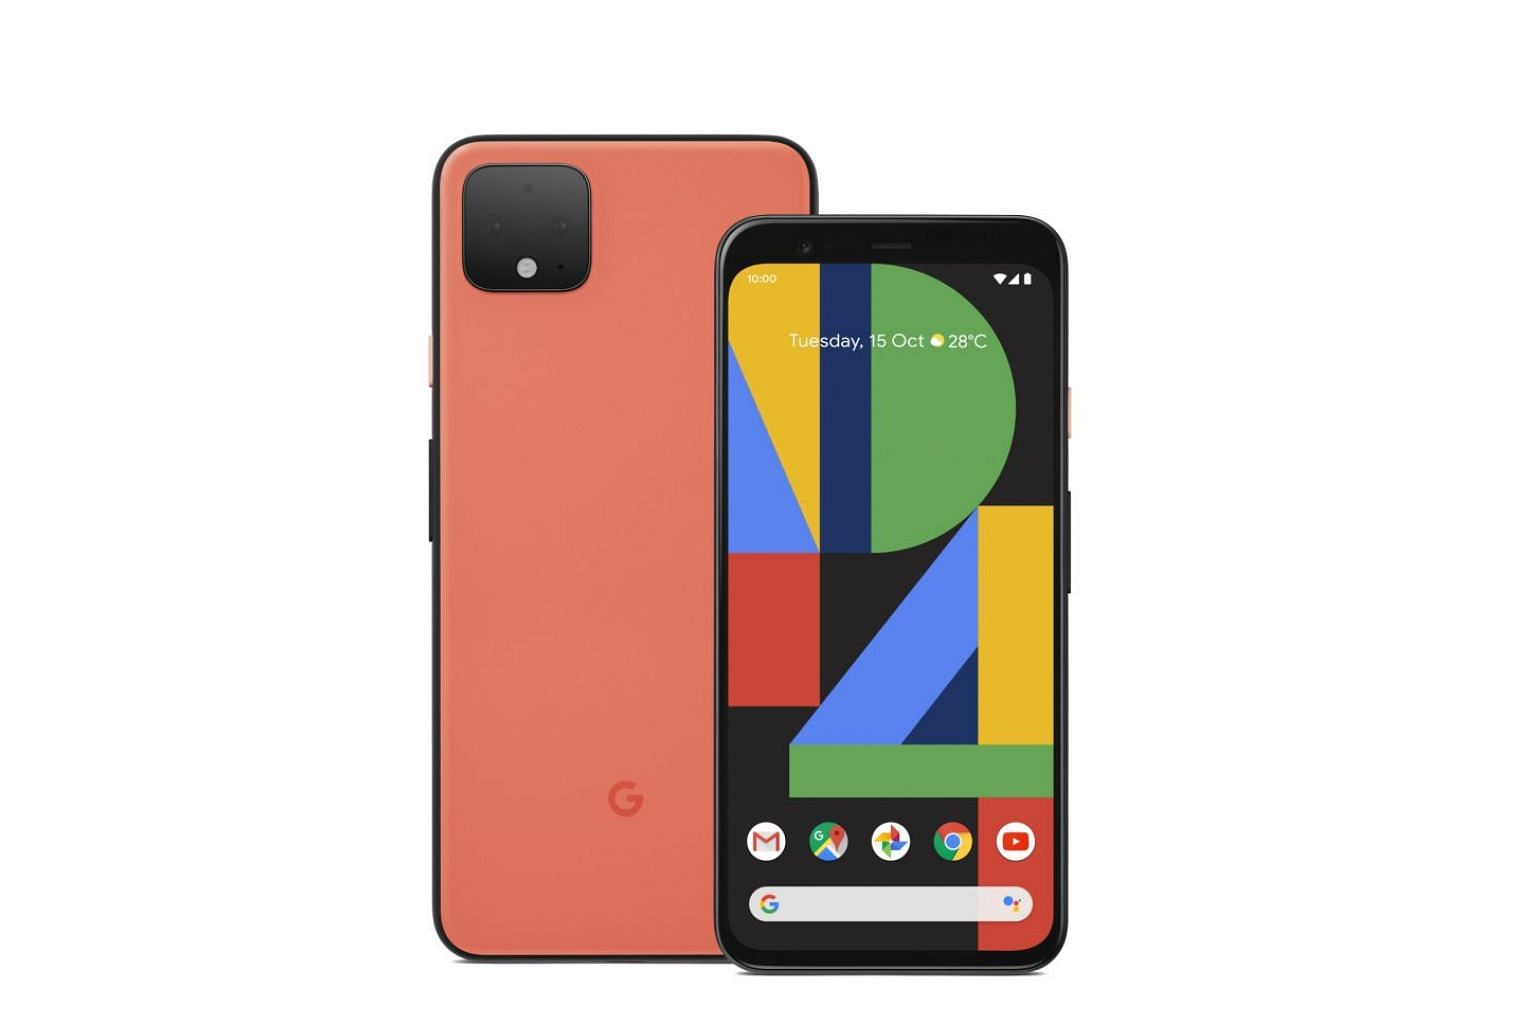 Google's latest Pixel 4 smartphone comes with a 90Hz Smooth Display that feels more responsive than standard 60Hz screens. PHOTO: GOOGLE